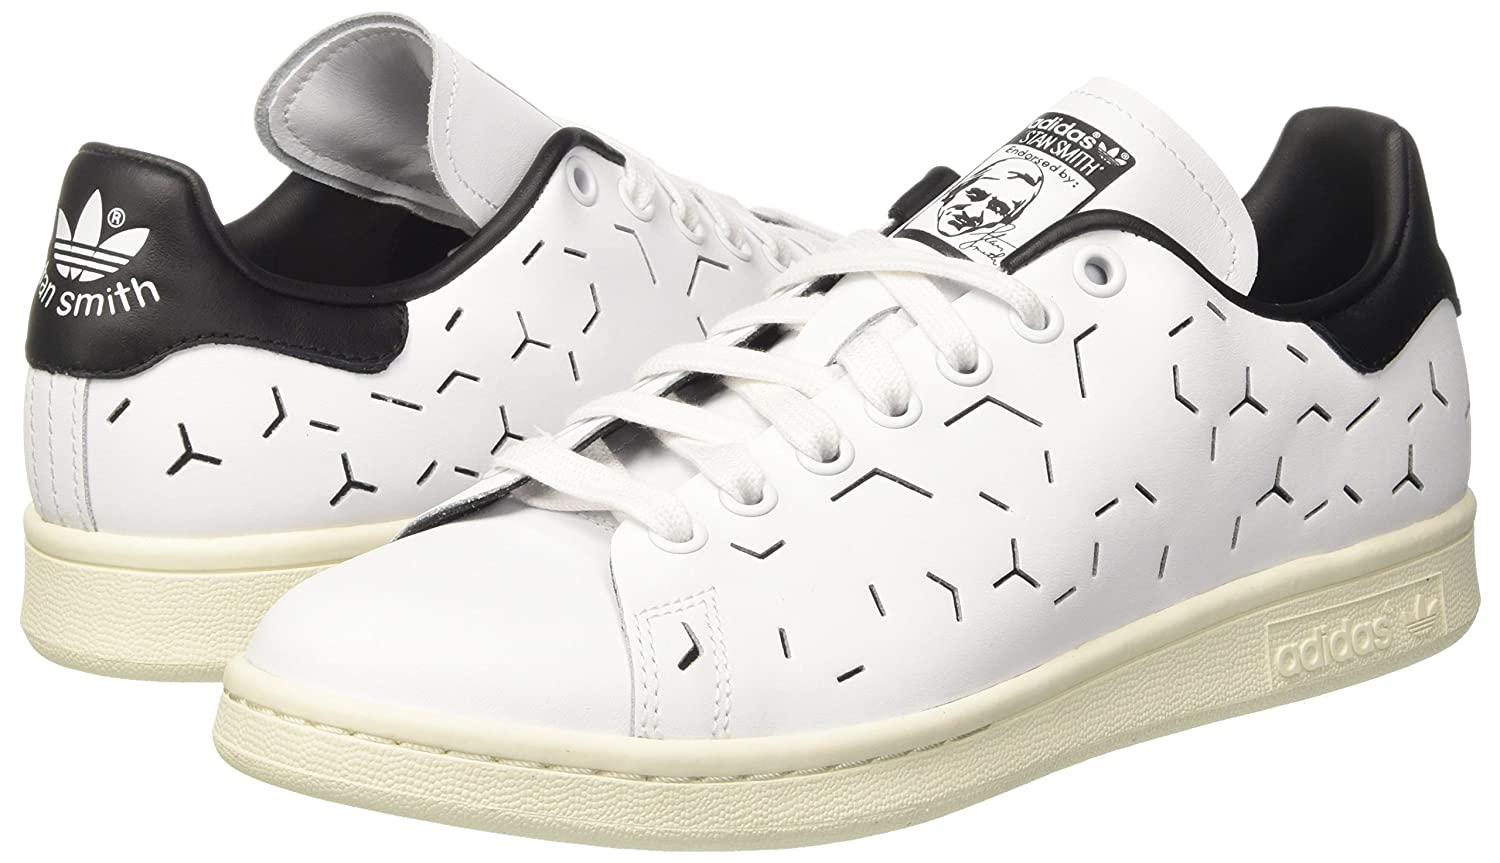 Adidas Adidas Adidas Damen Stan Smith Turnschuhe  b86482